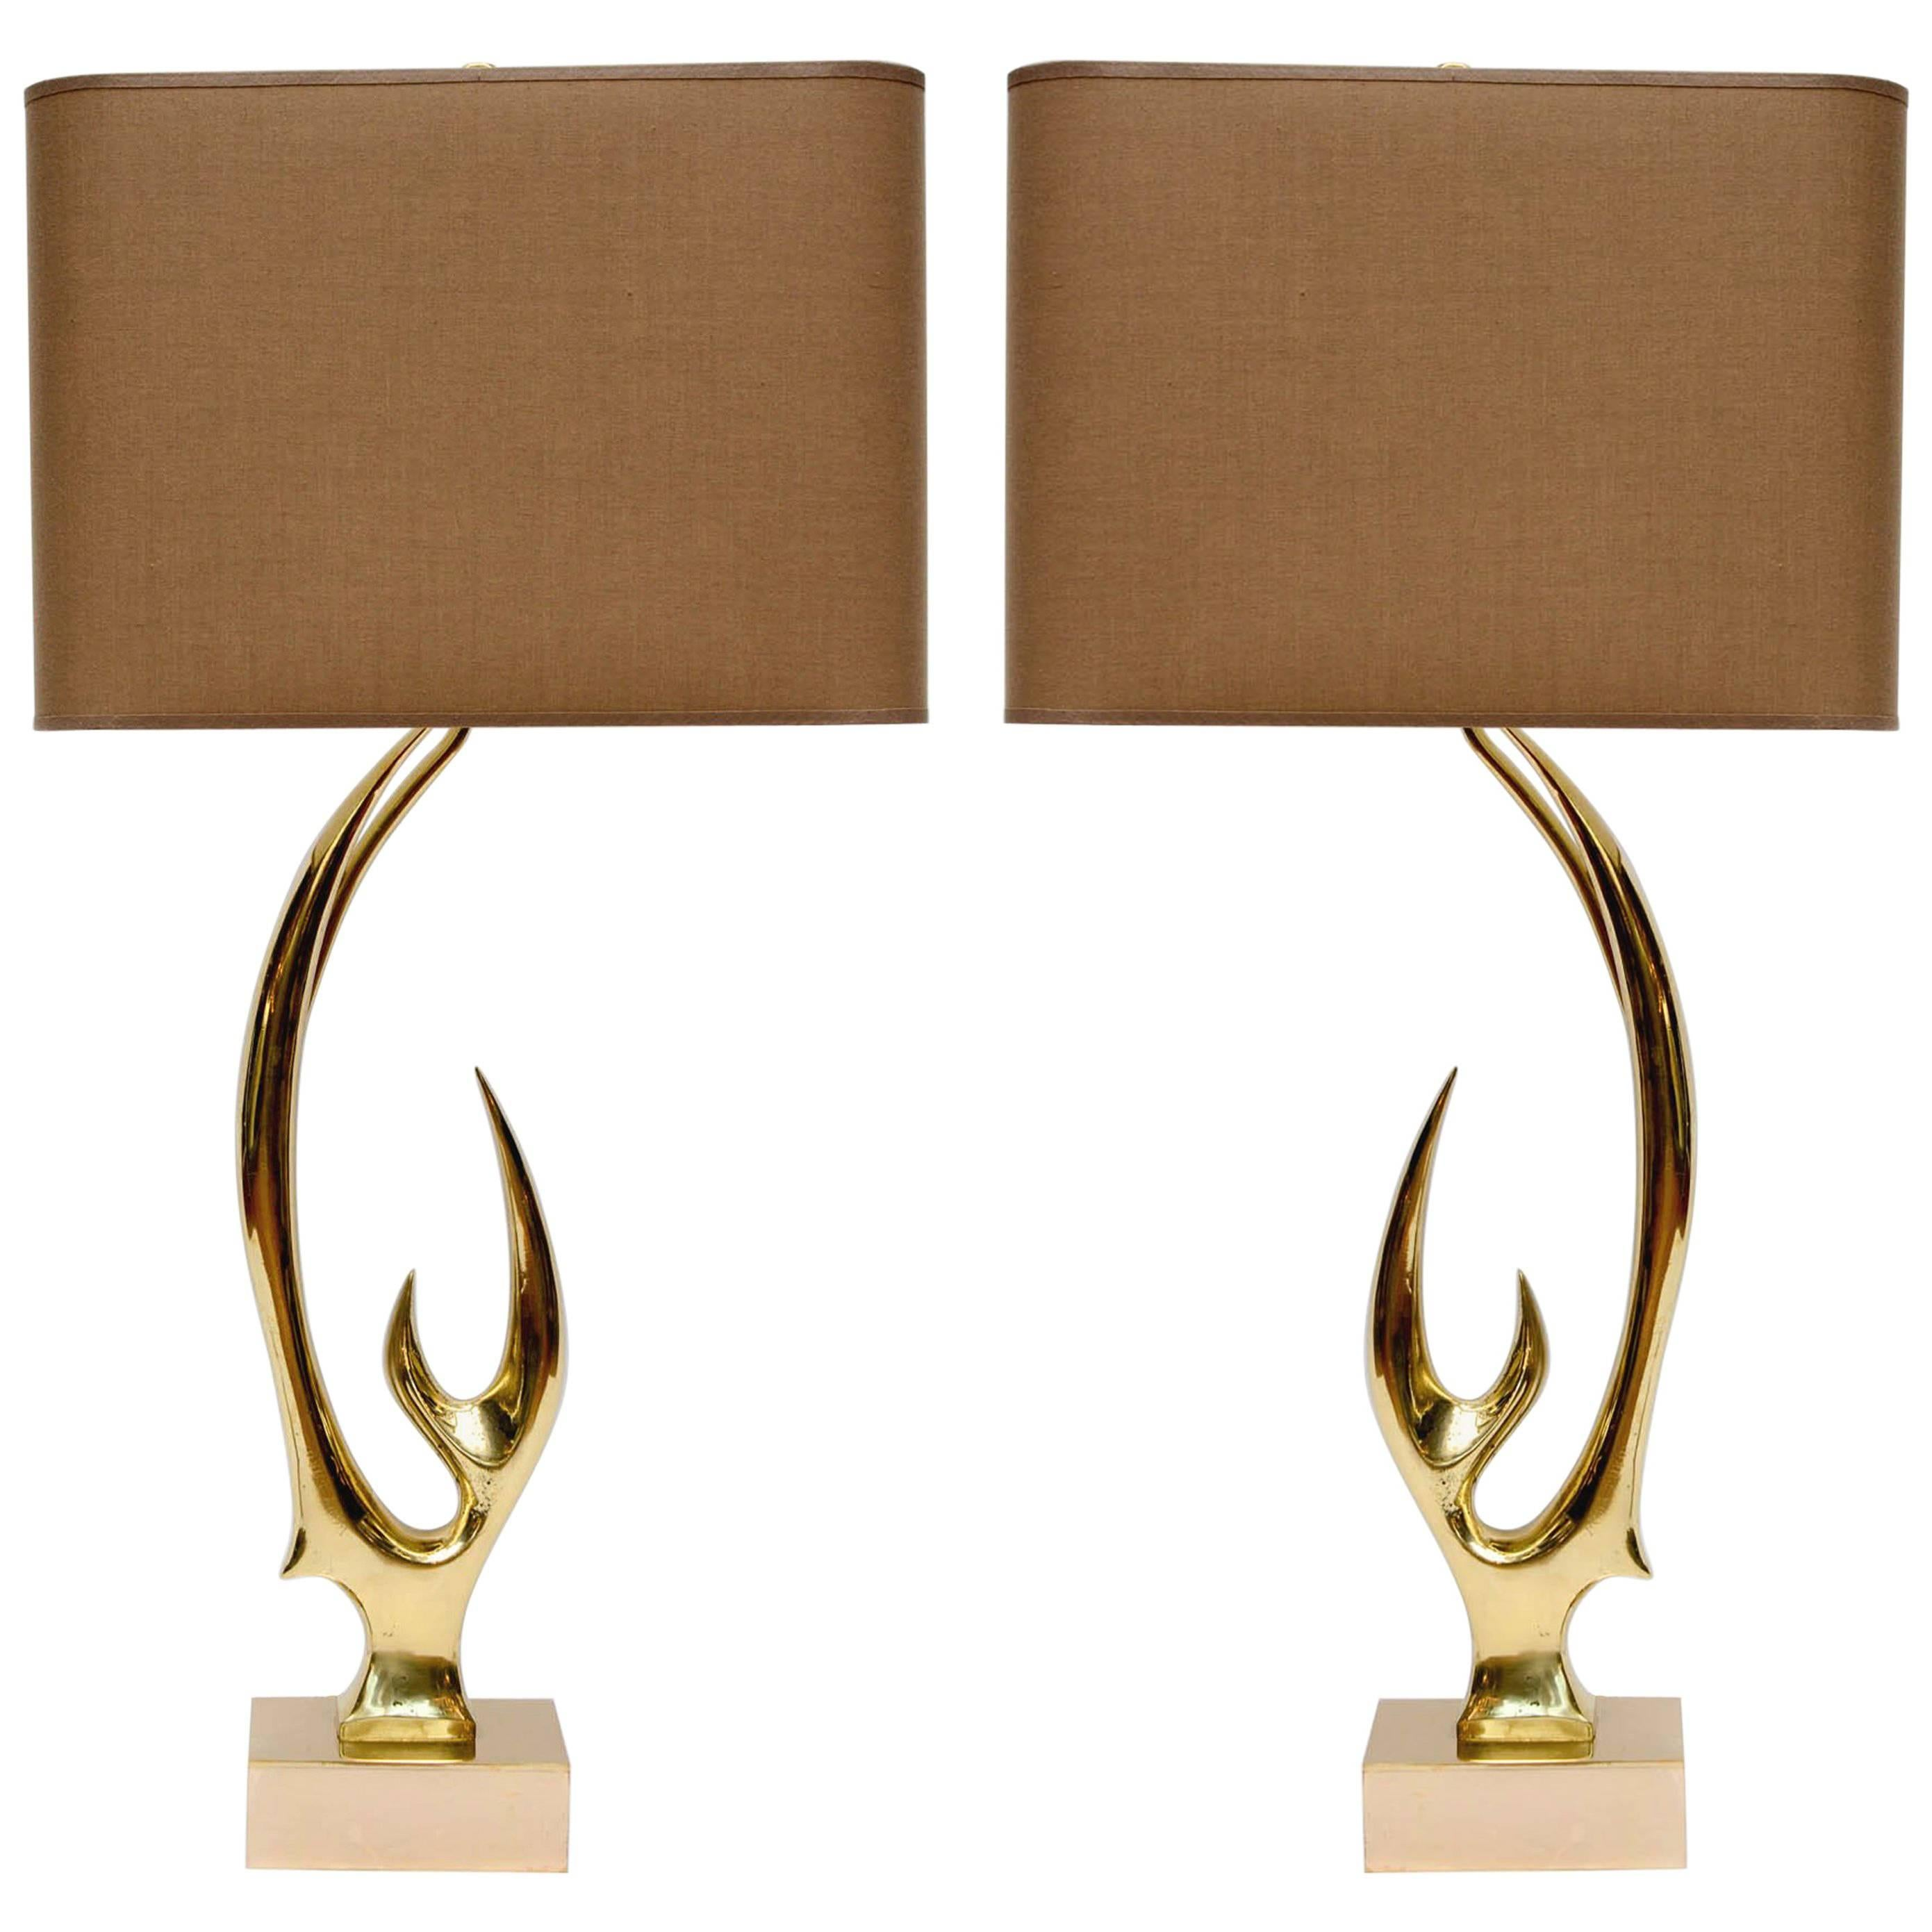 Pair of Brass Lamps Signed by Willy Daro